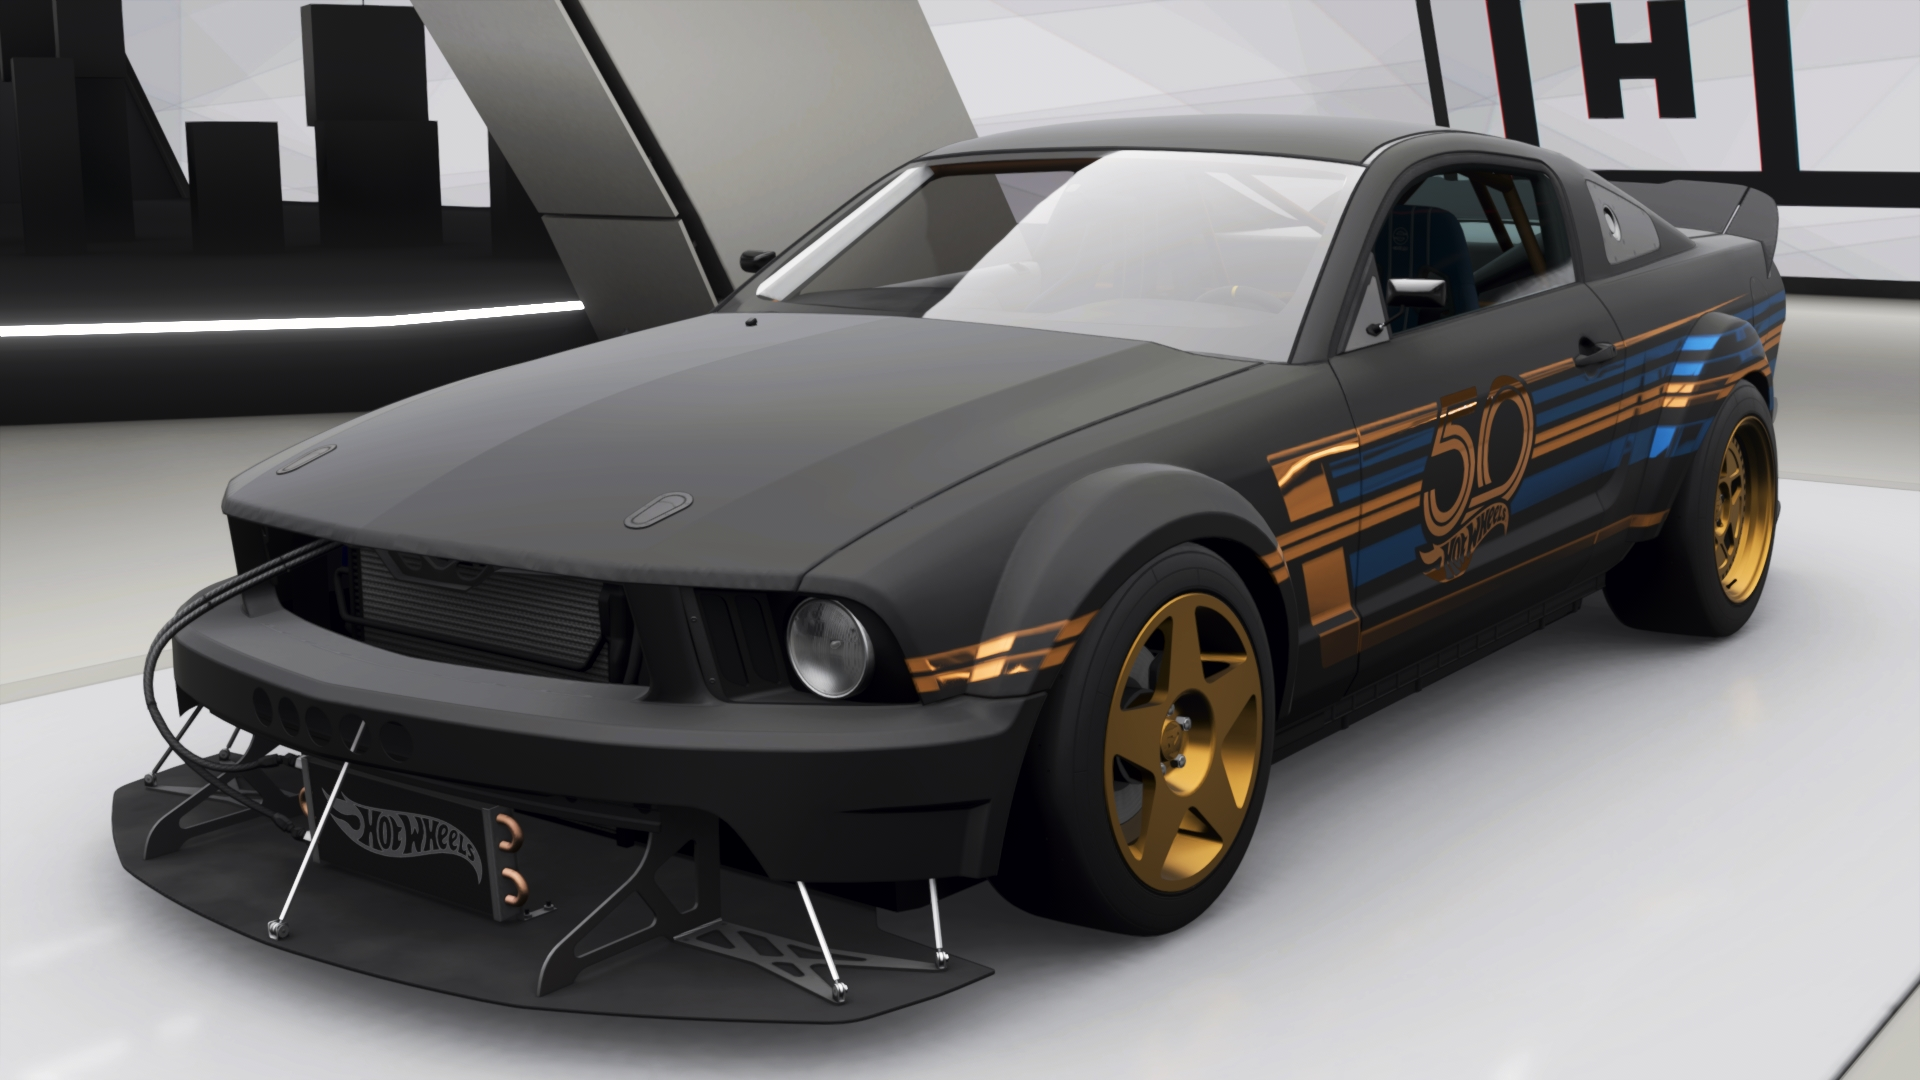 Hot Wheels Ford Mustang | Forza Motorsport Wiki | FANDOM